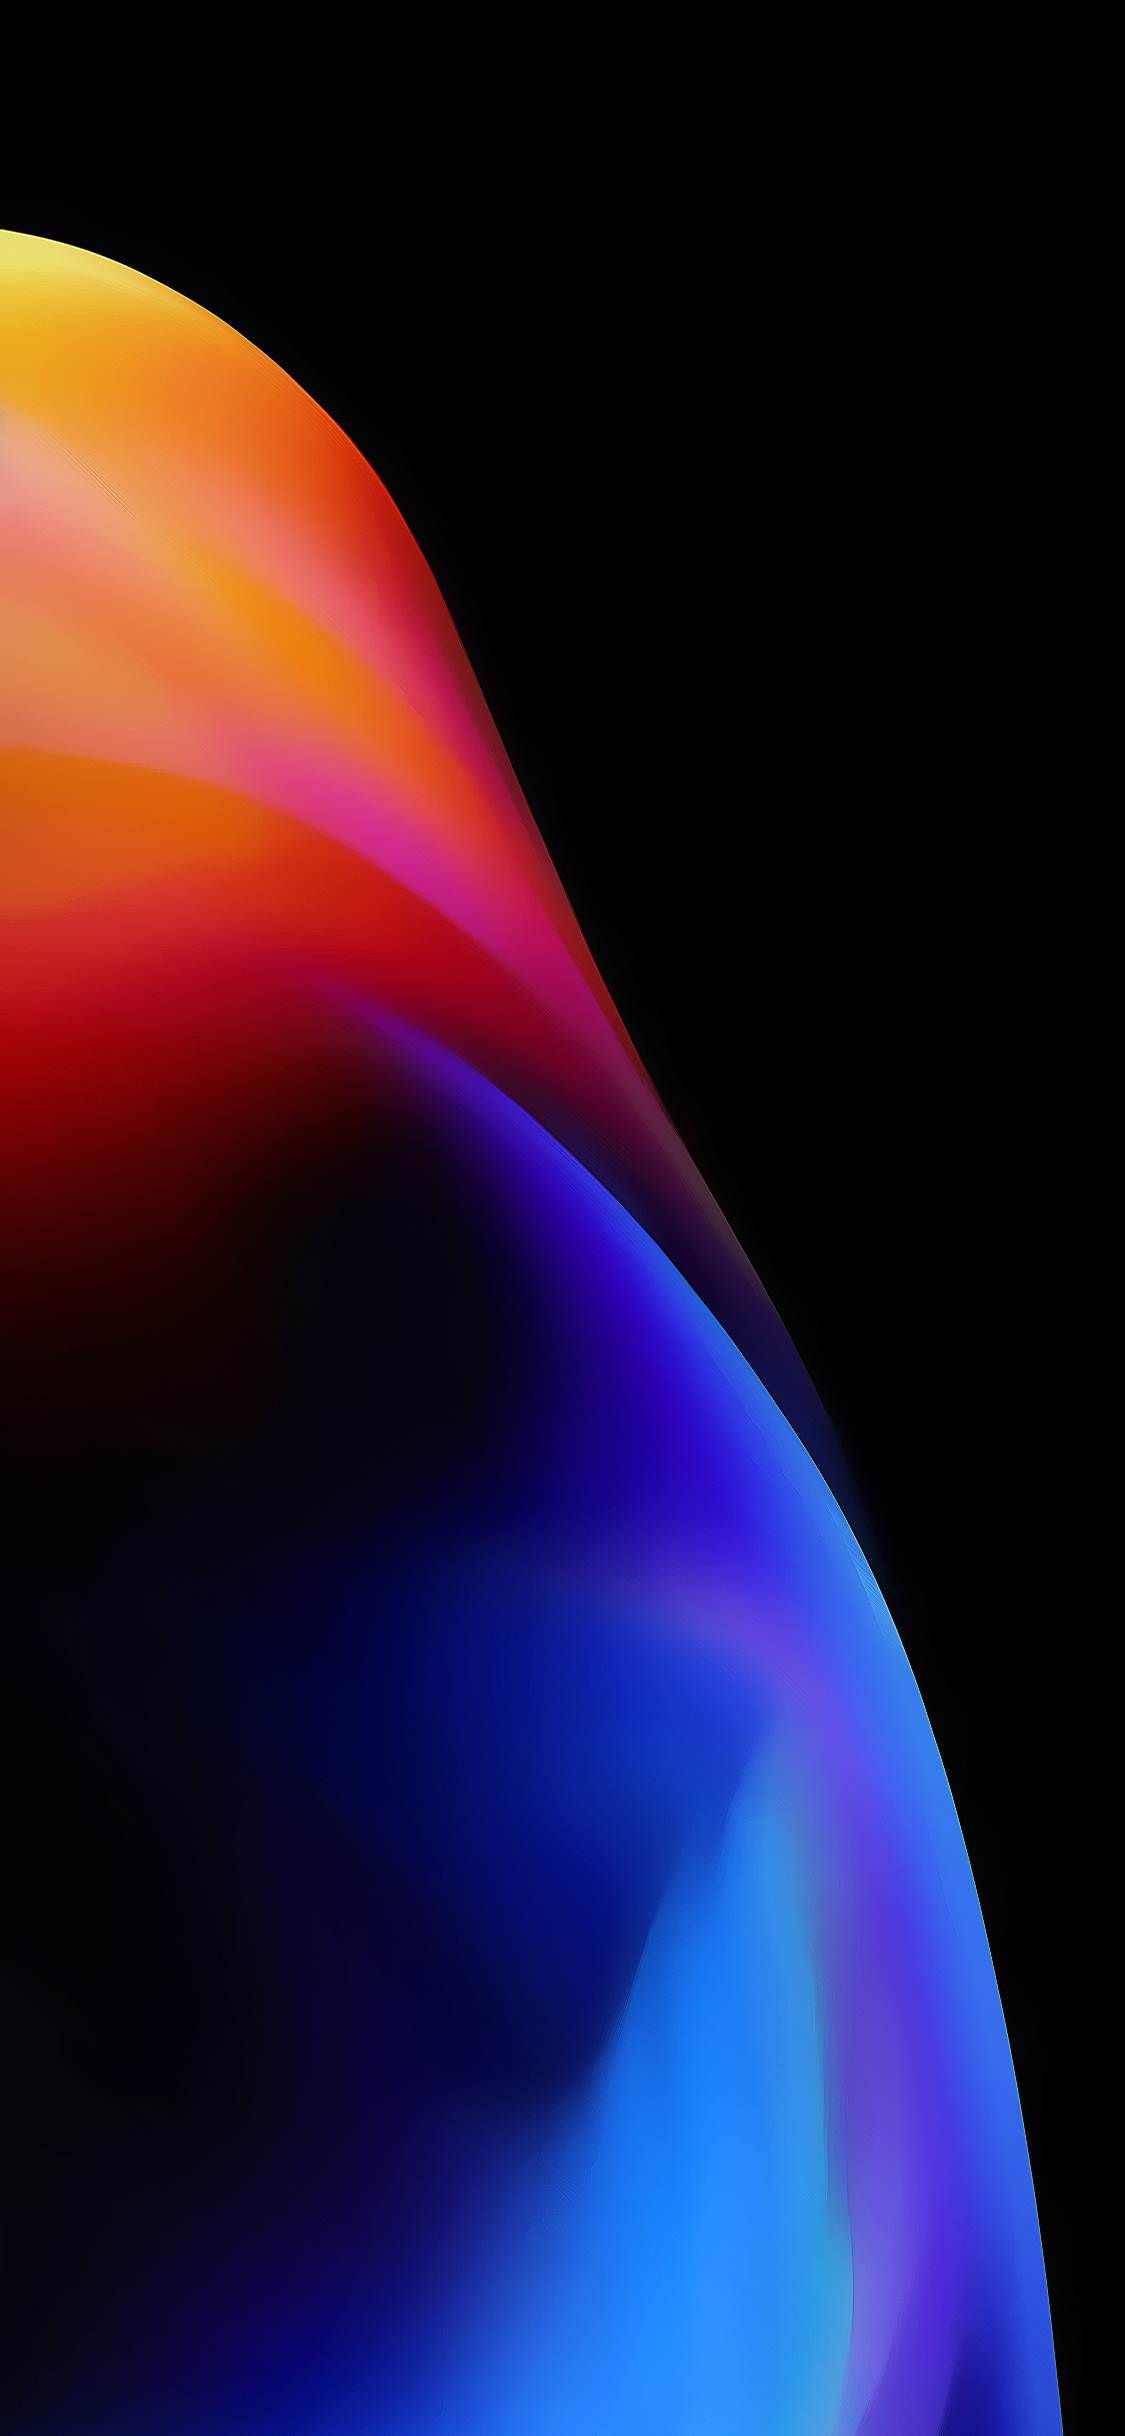 Iphone X Product Red Wallpaper Iphone Wallpaper Dimensions Iphone 8 Wallpaper Hd Best Iphone Wallpapers